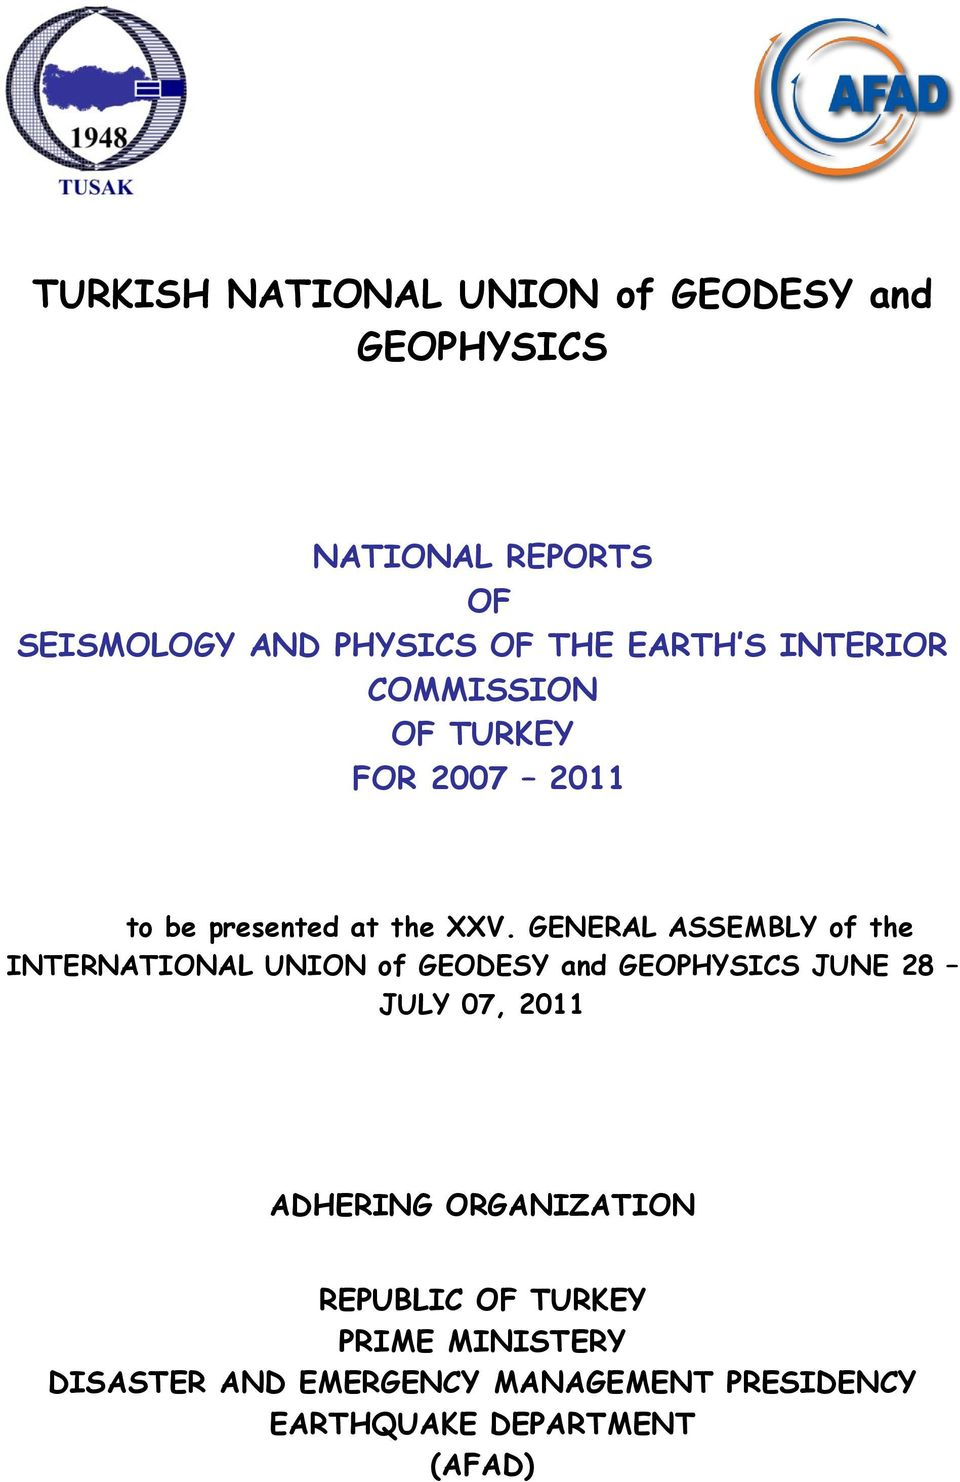 GENERAL ASSEMBLY of the INTERNATIONAL UNION of GEODESY and GEOPHYSICS JUNE 28 JULY 07, 2011 ADHERING